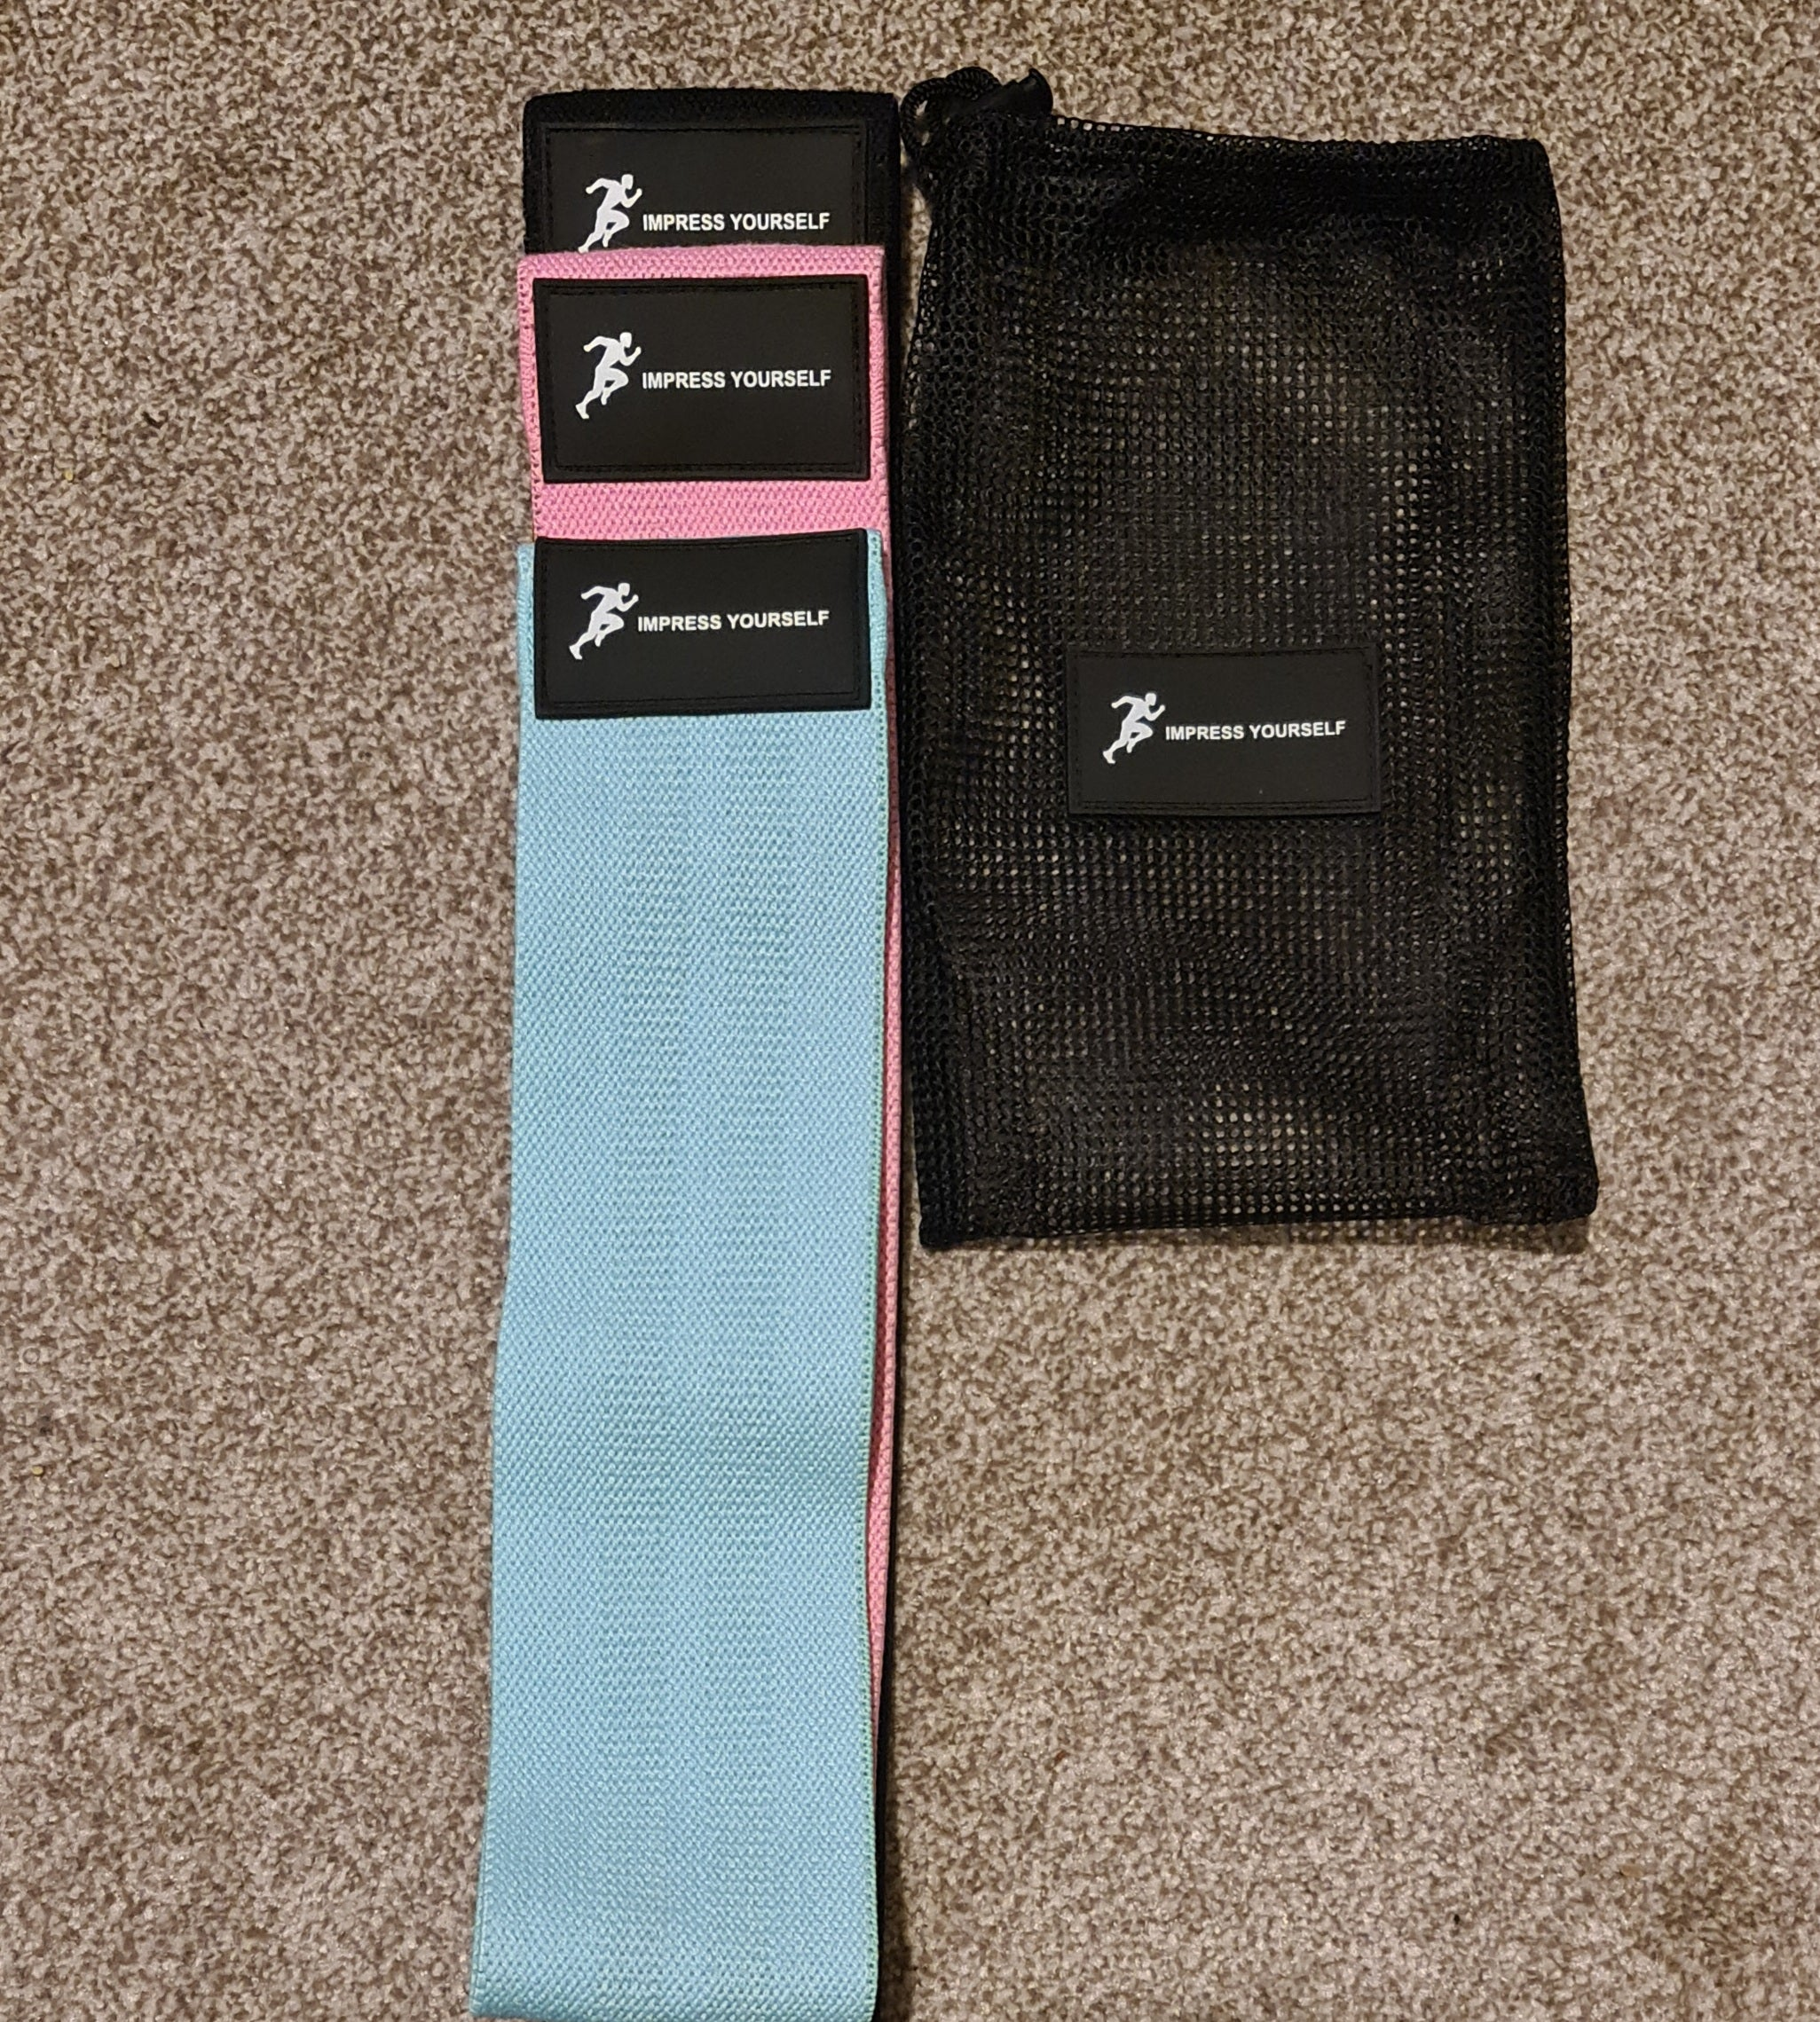 Impress Yourself 3-Piece Fabric Resistance Bands with guide book.